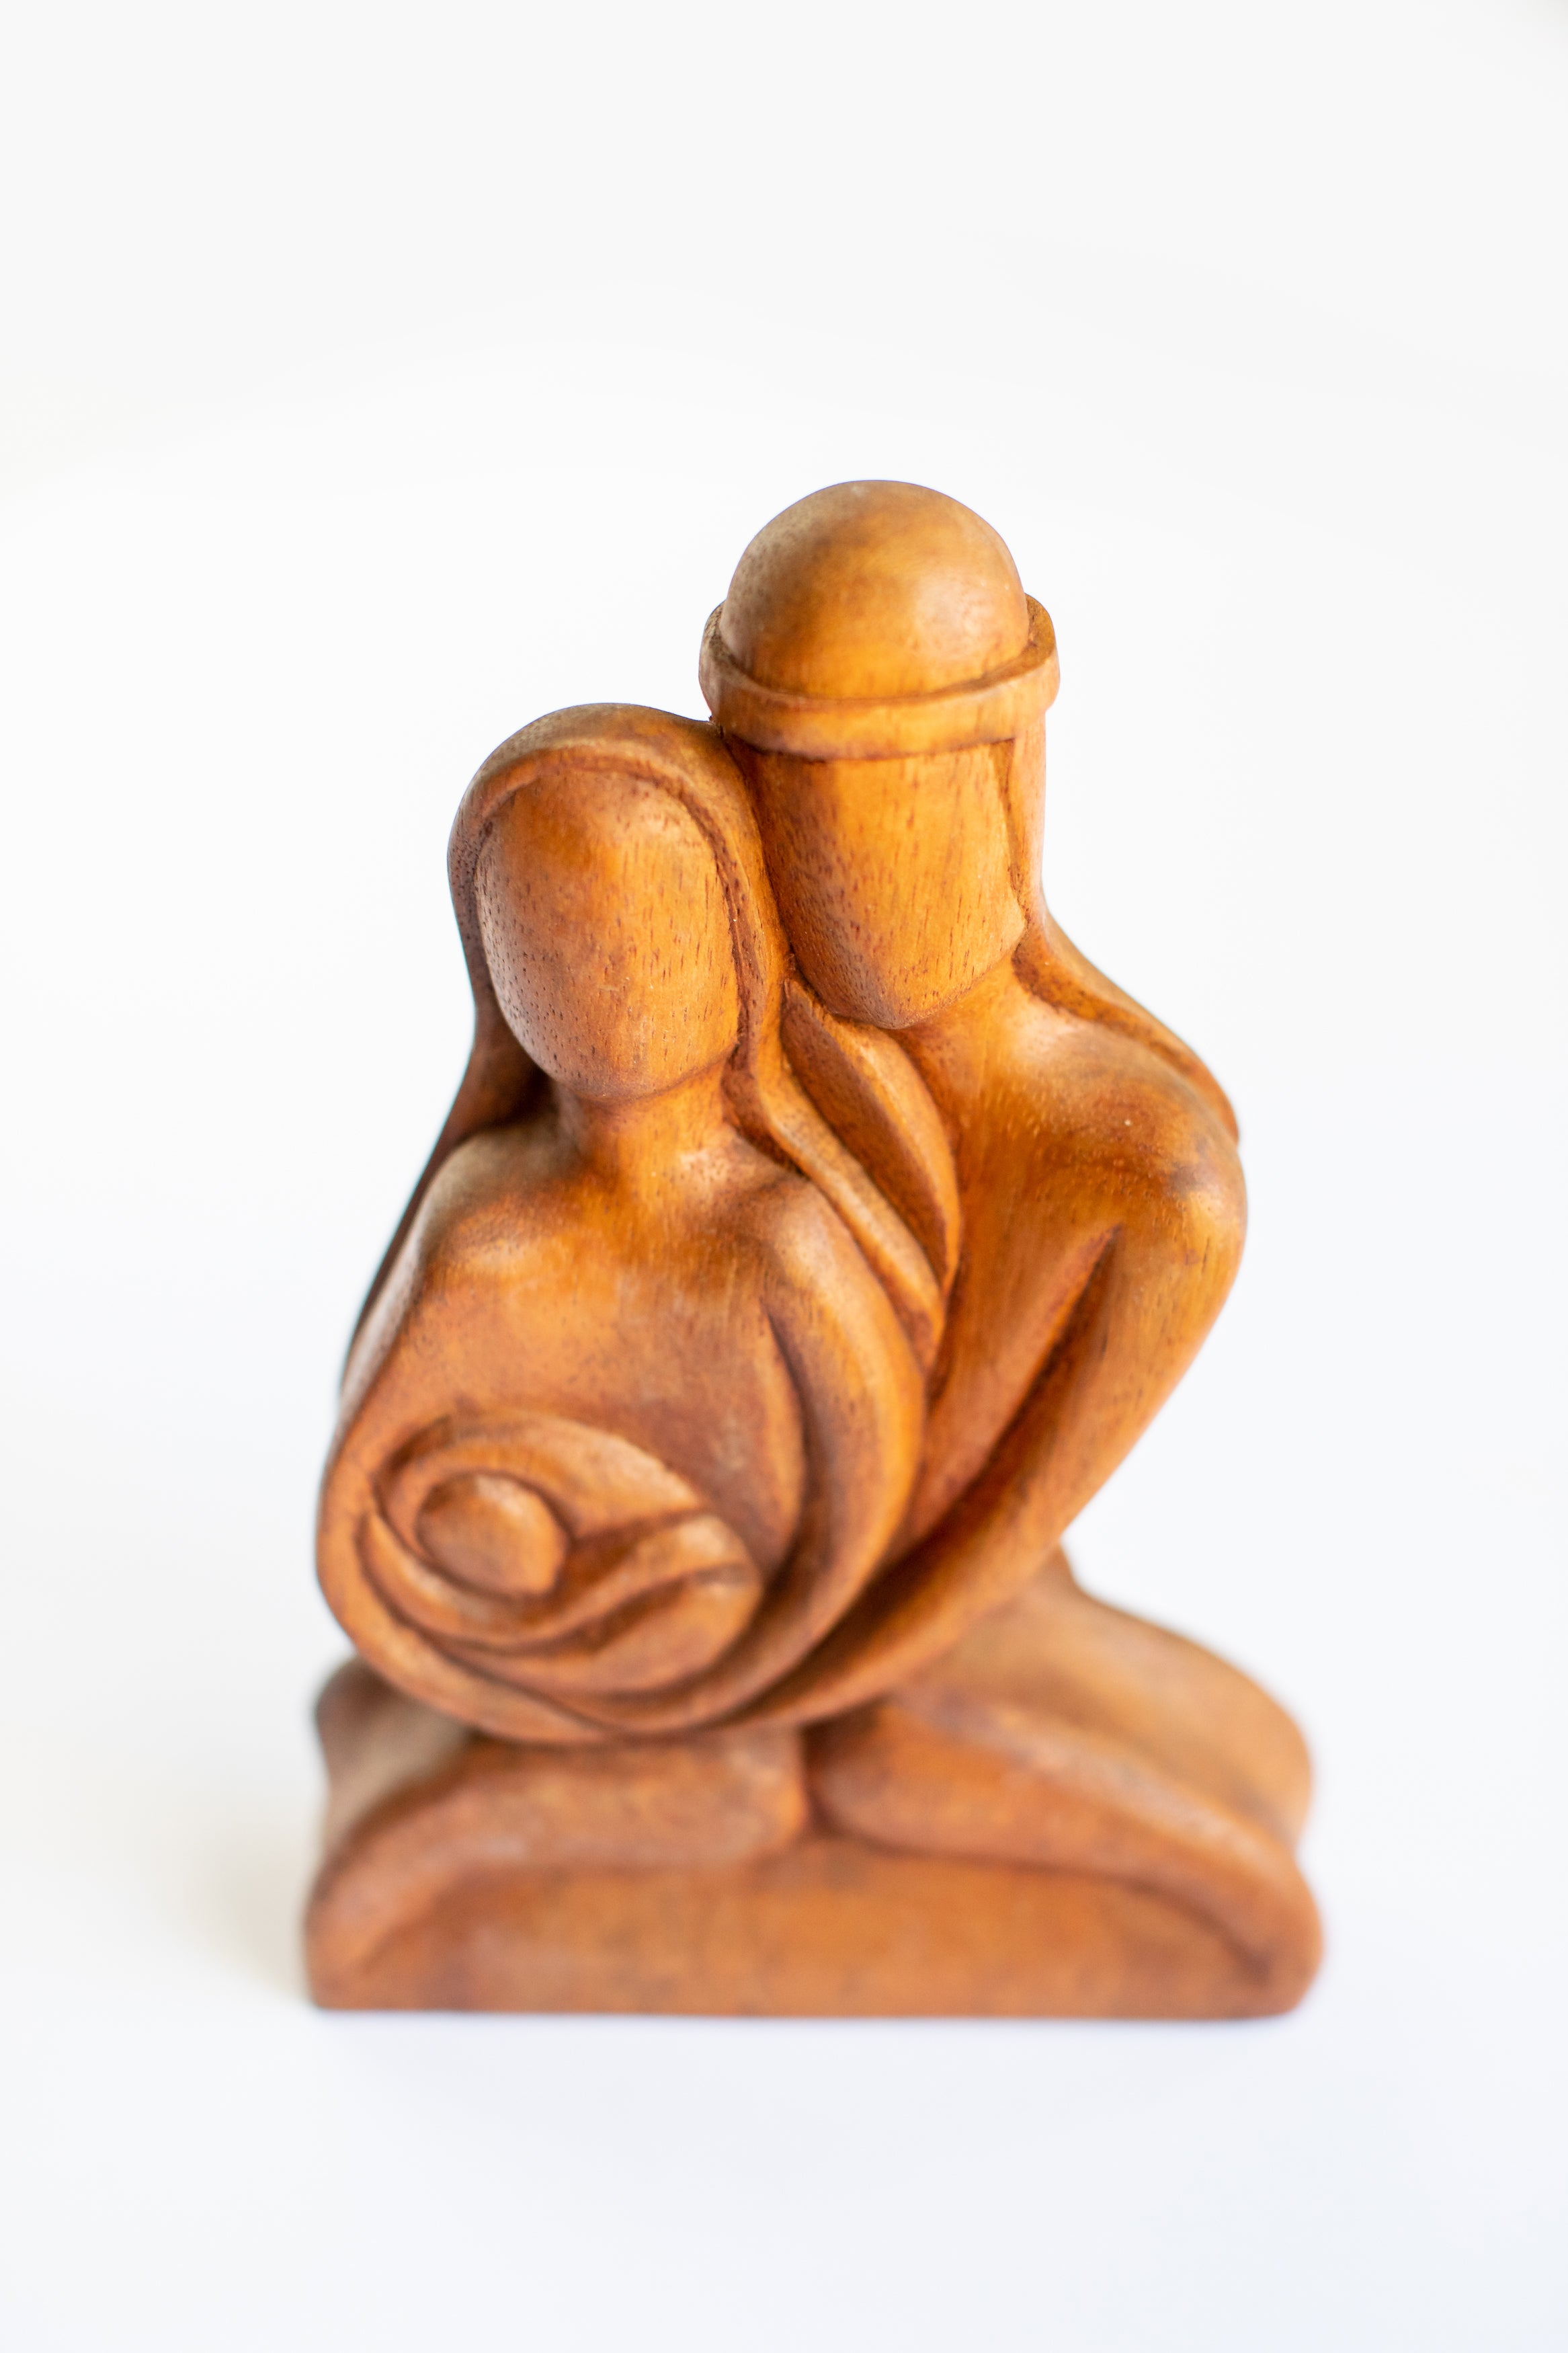 Mary & Joseph Wooden Figurine